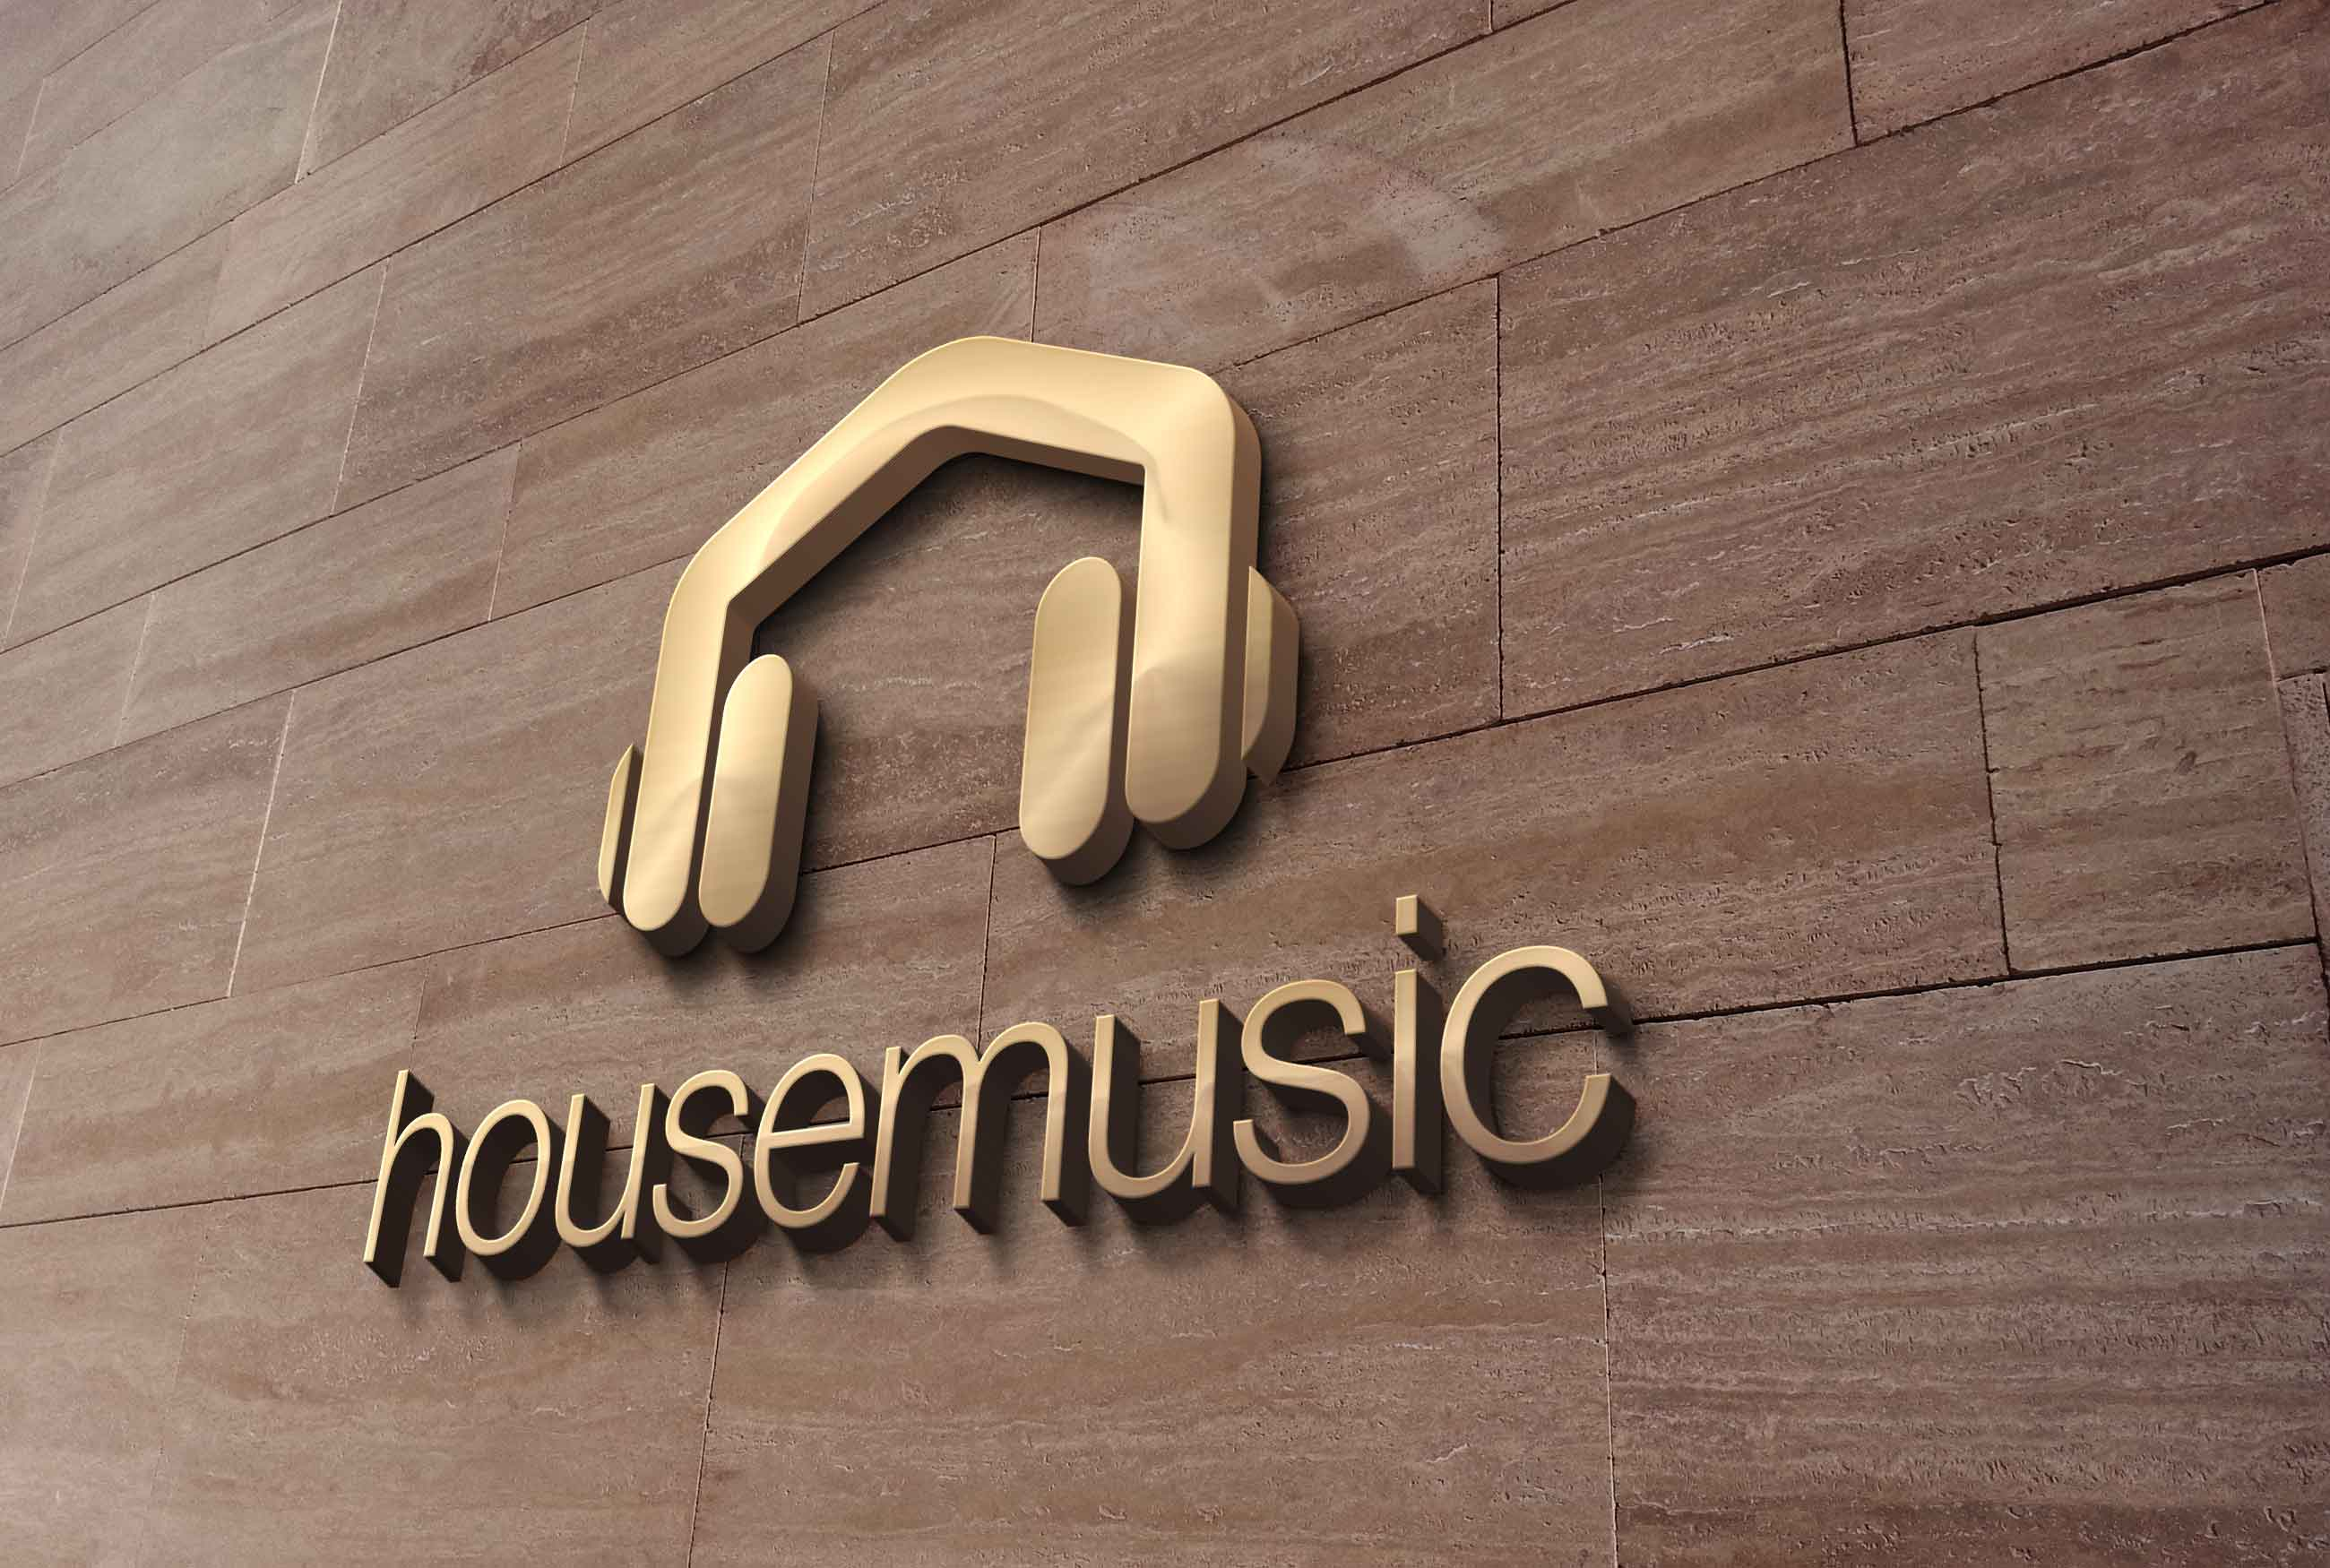 House music headphones logo design logo cowboy for House house house music